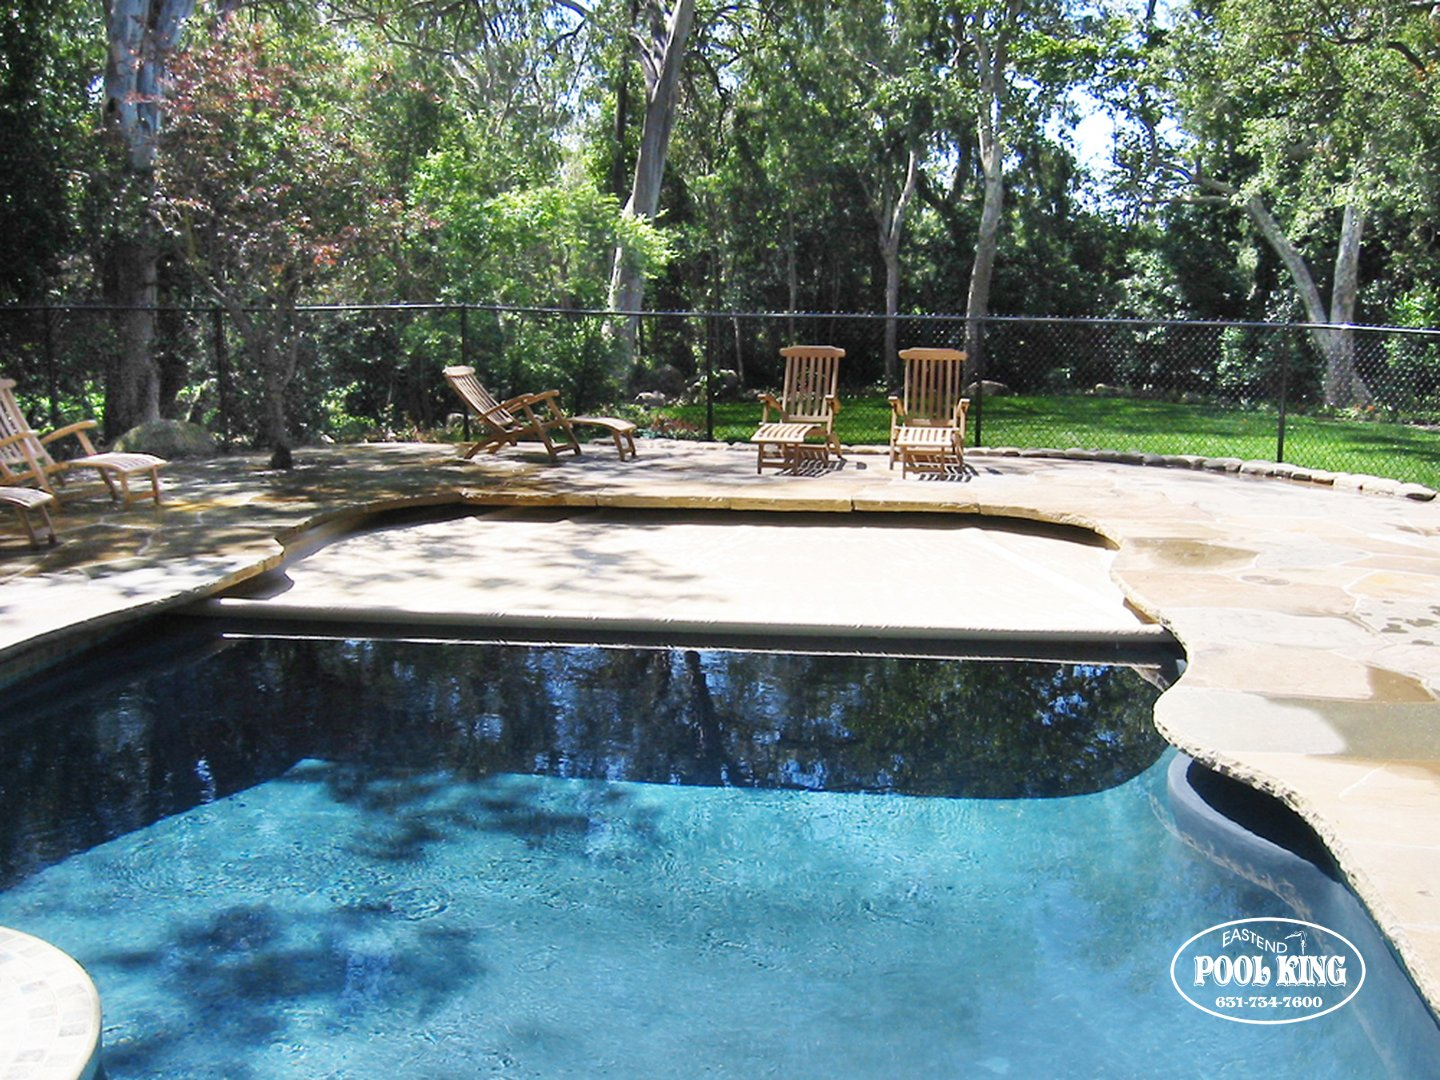 Jacuzzi Pool Covers Pool Covers Swimming Pool Service And Renovations North Fork